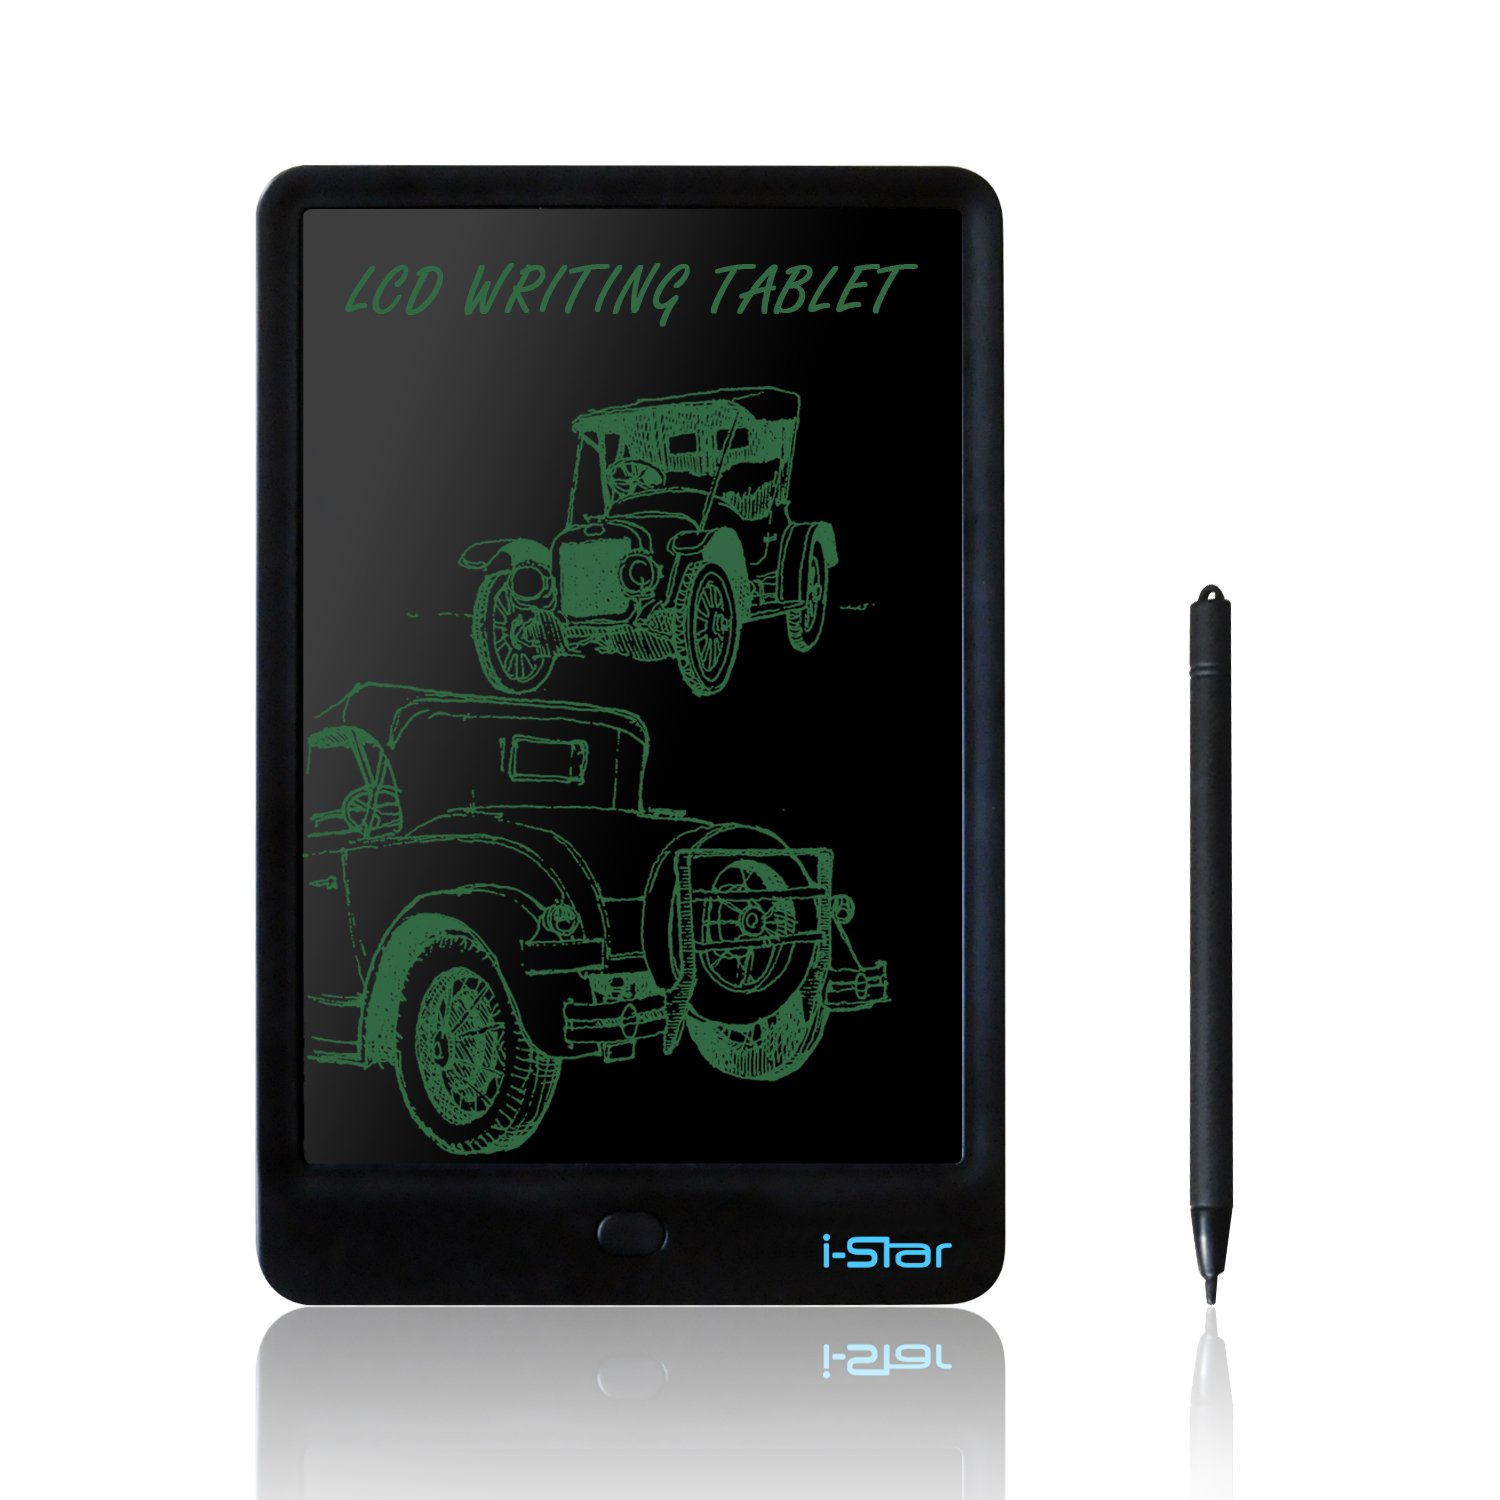 LCD Writing Tablet, i-Star 10 inches Lock Electronic Drawing Painting Board, Paper-Free, Portable Doodle Handwriting Notepad Gift for Kids Adults Designer Office House, Black by I-STAR (Image #1)